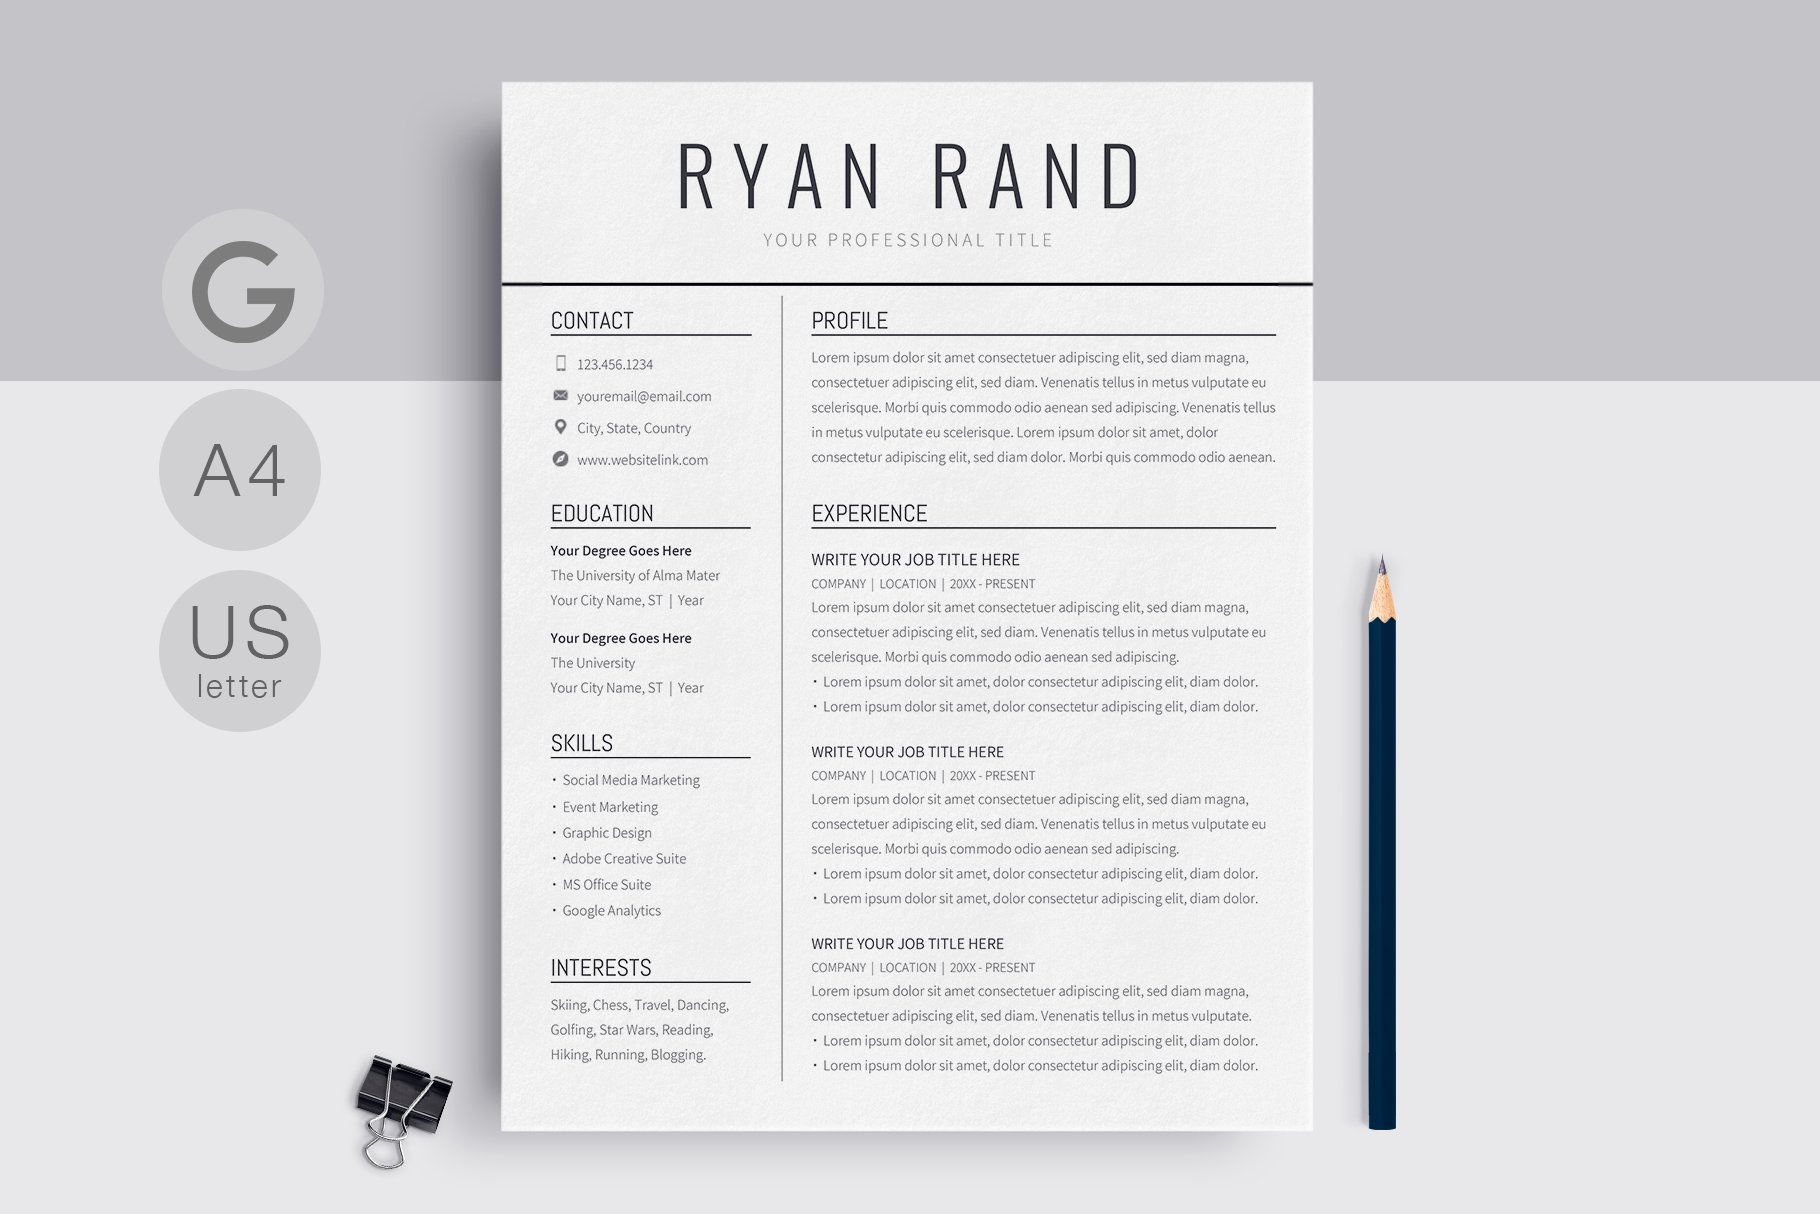 google docs resume template by templates on dribbble ryan rand black cm should you follow Resume Template Resume Google Docs